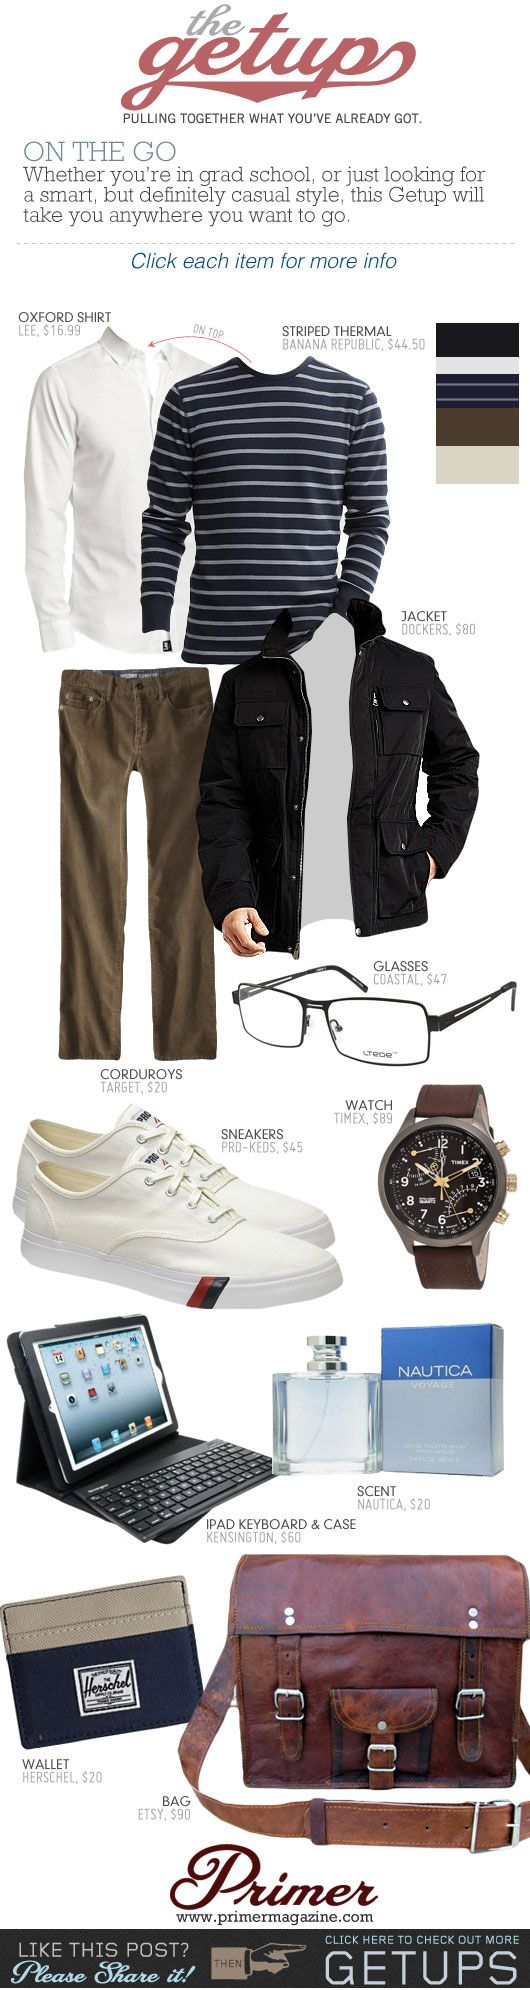 The Getup: On The Go Whether you're in grad school, or just looking for a smart, but definitely casual style, this Getup will take you anywhere you want to go